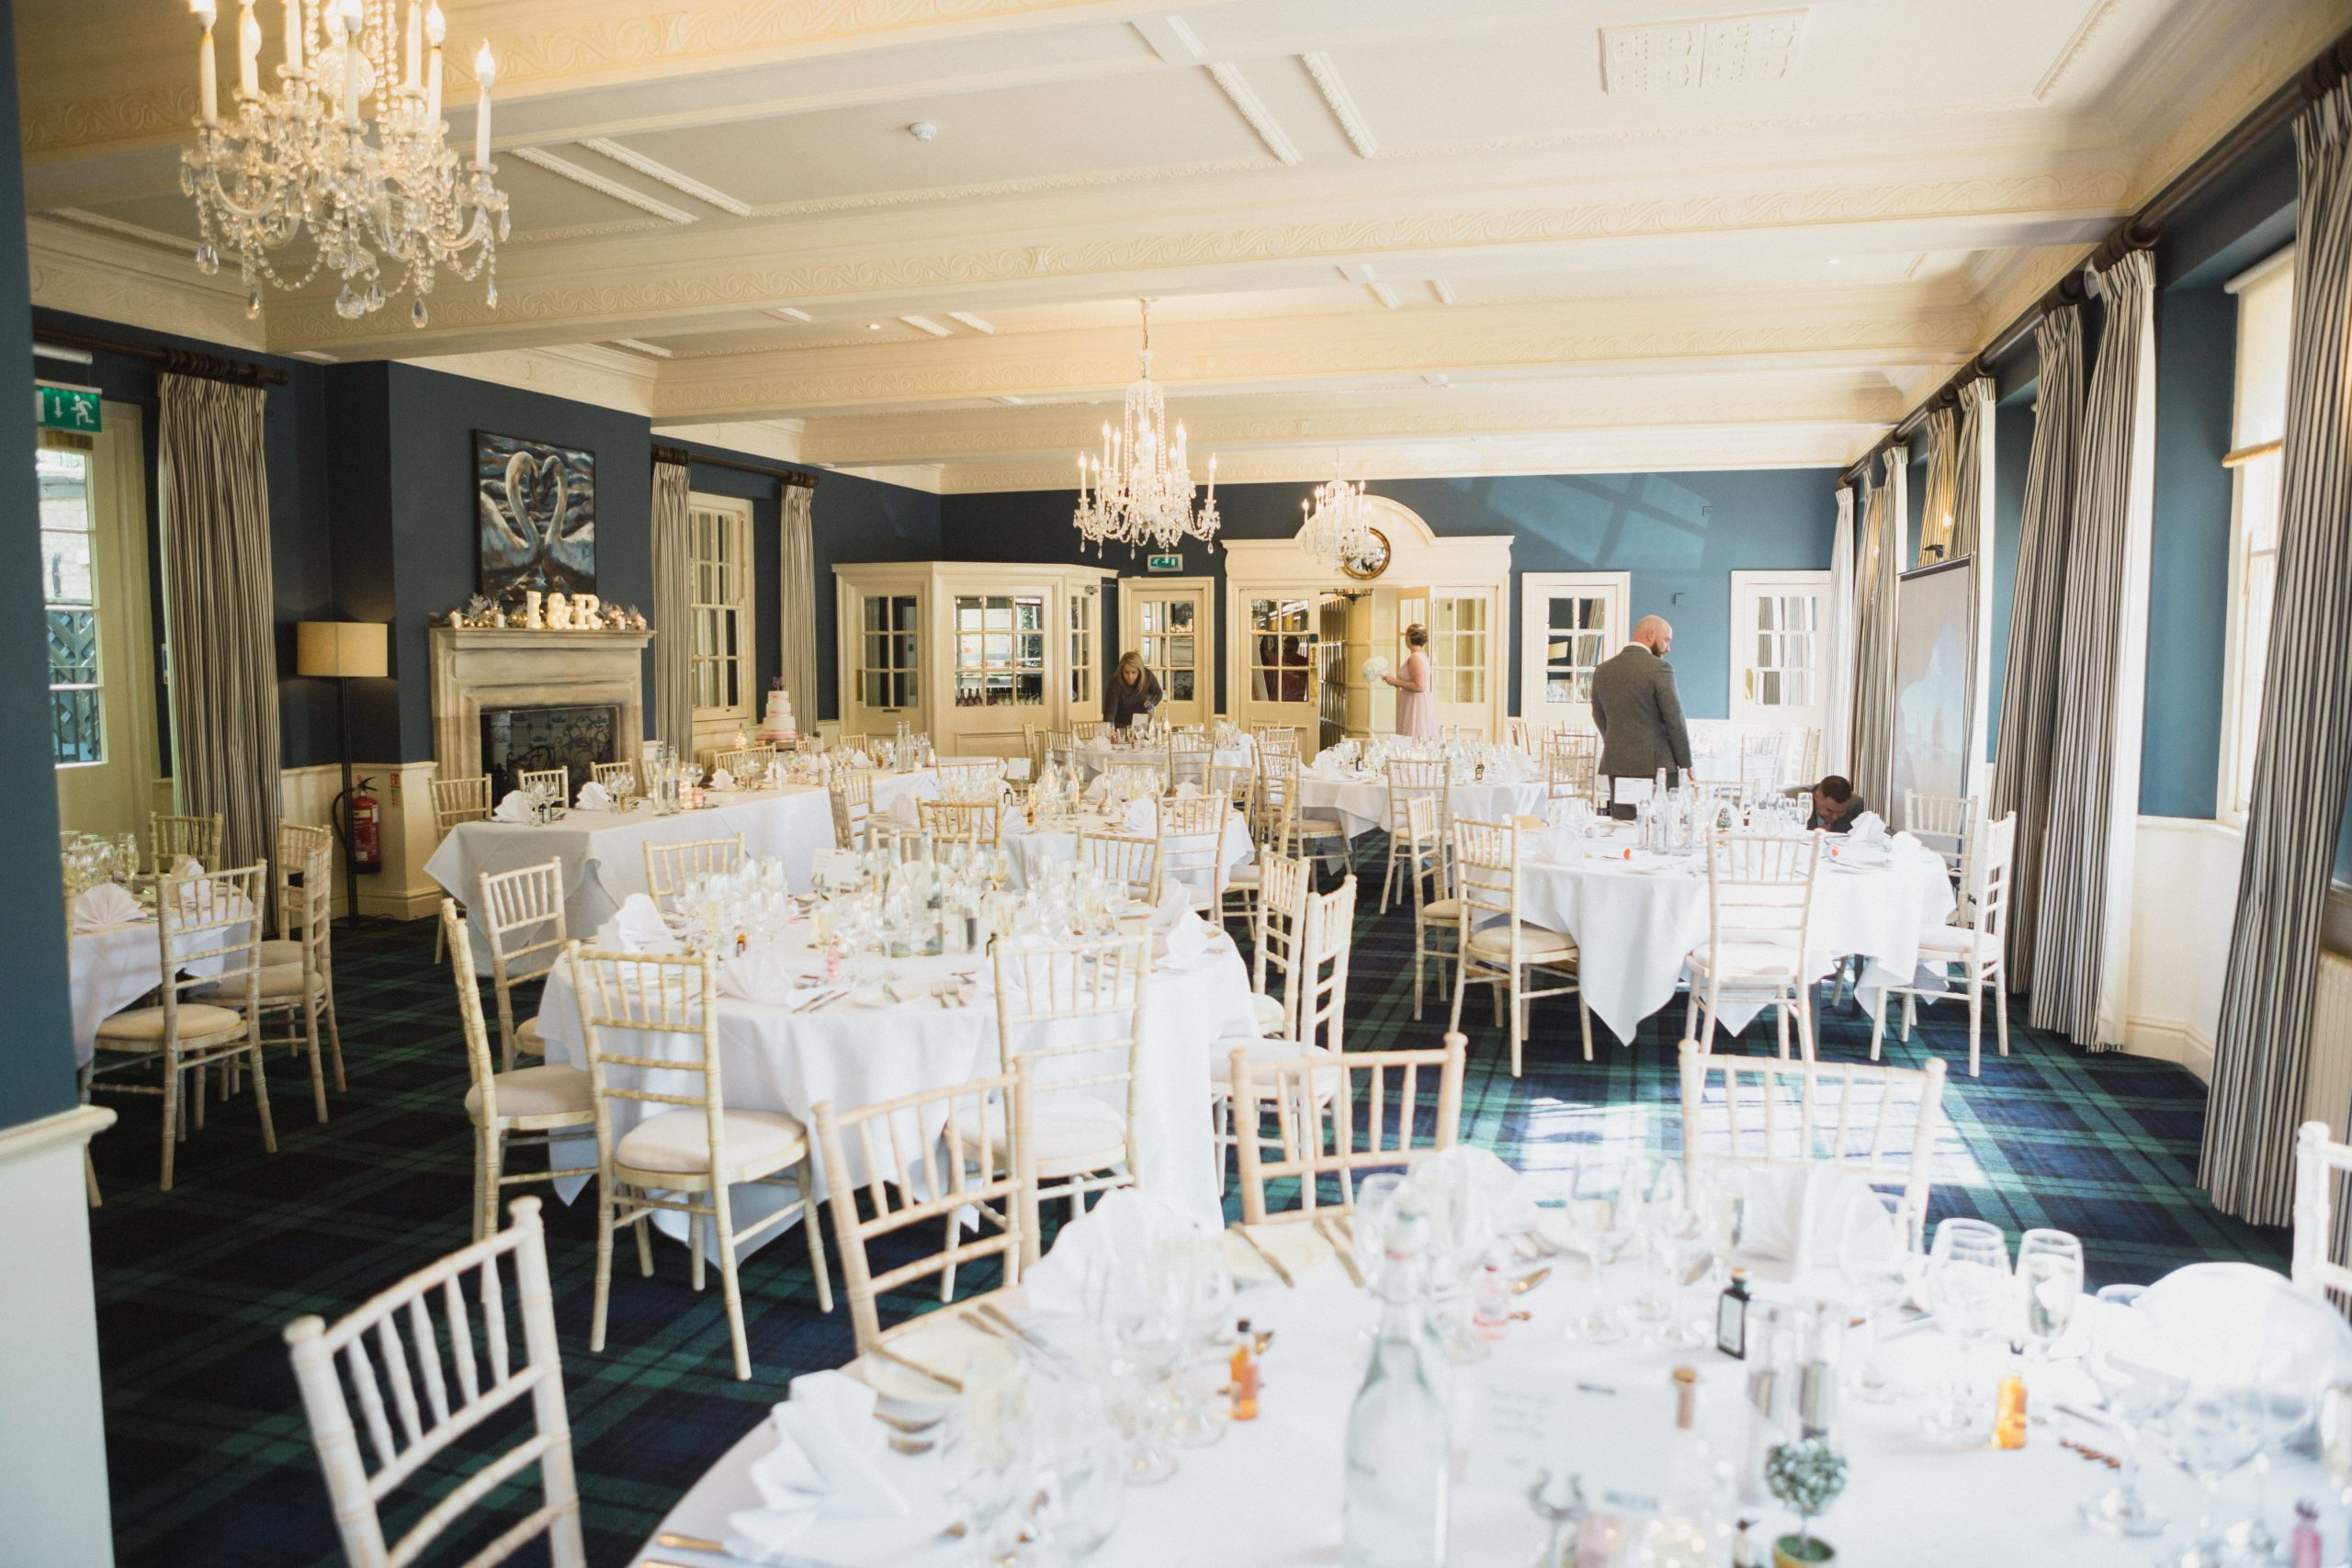 The swan hotel wedding breakfast room